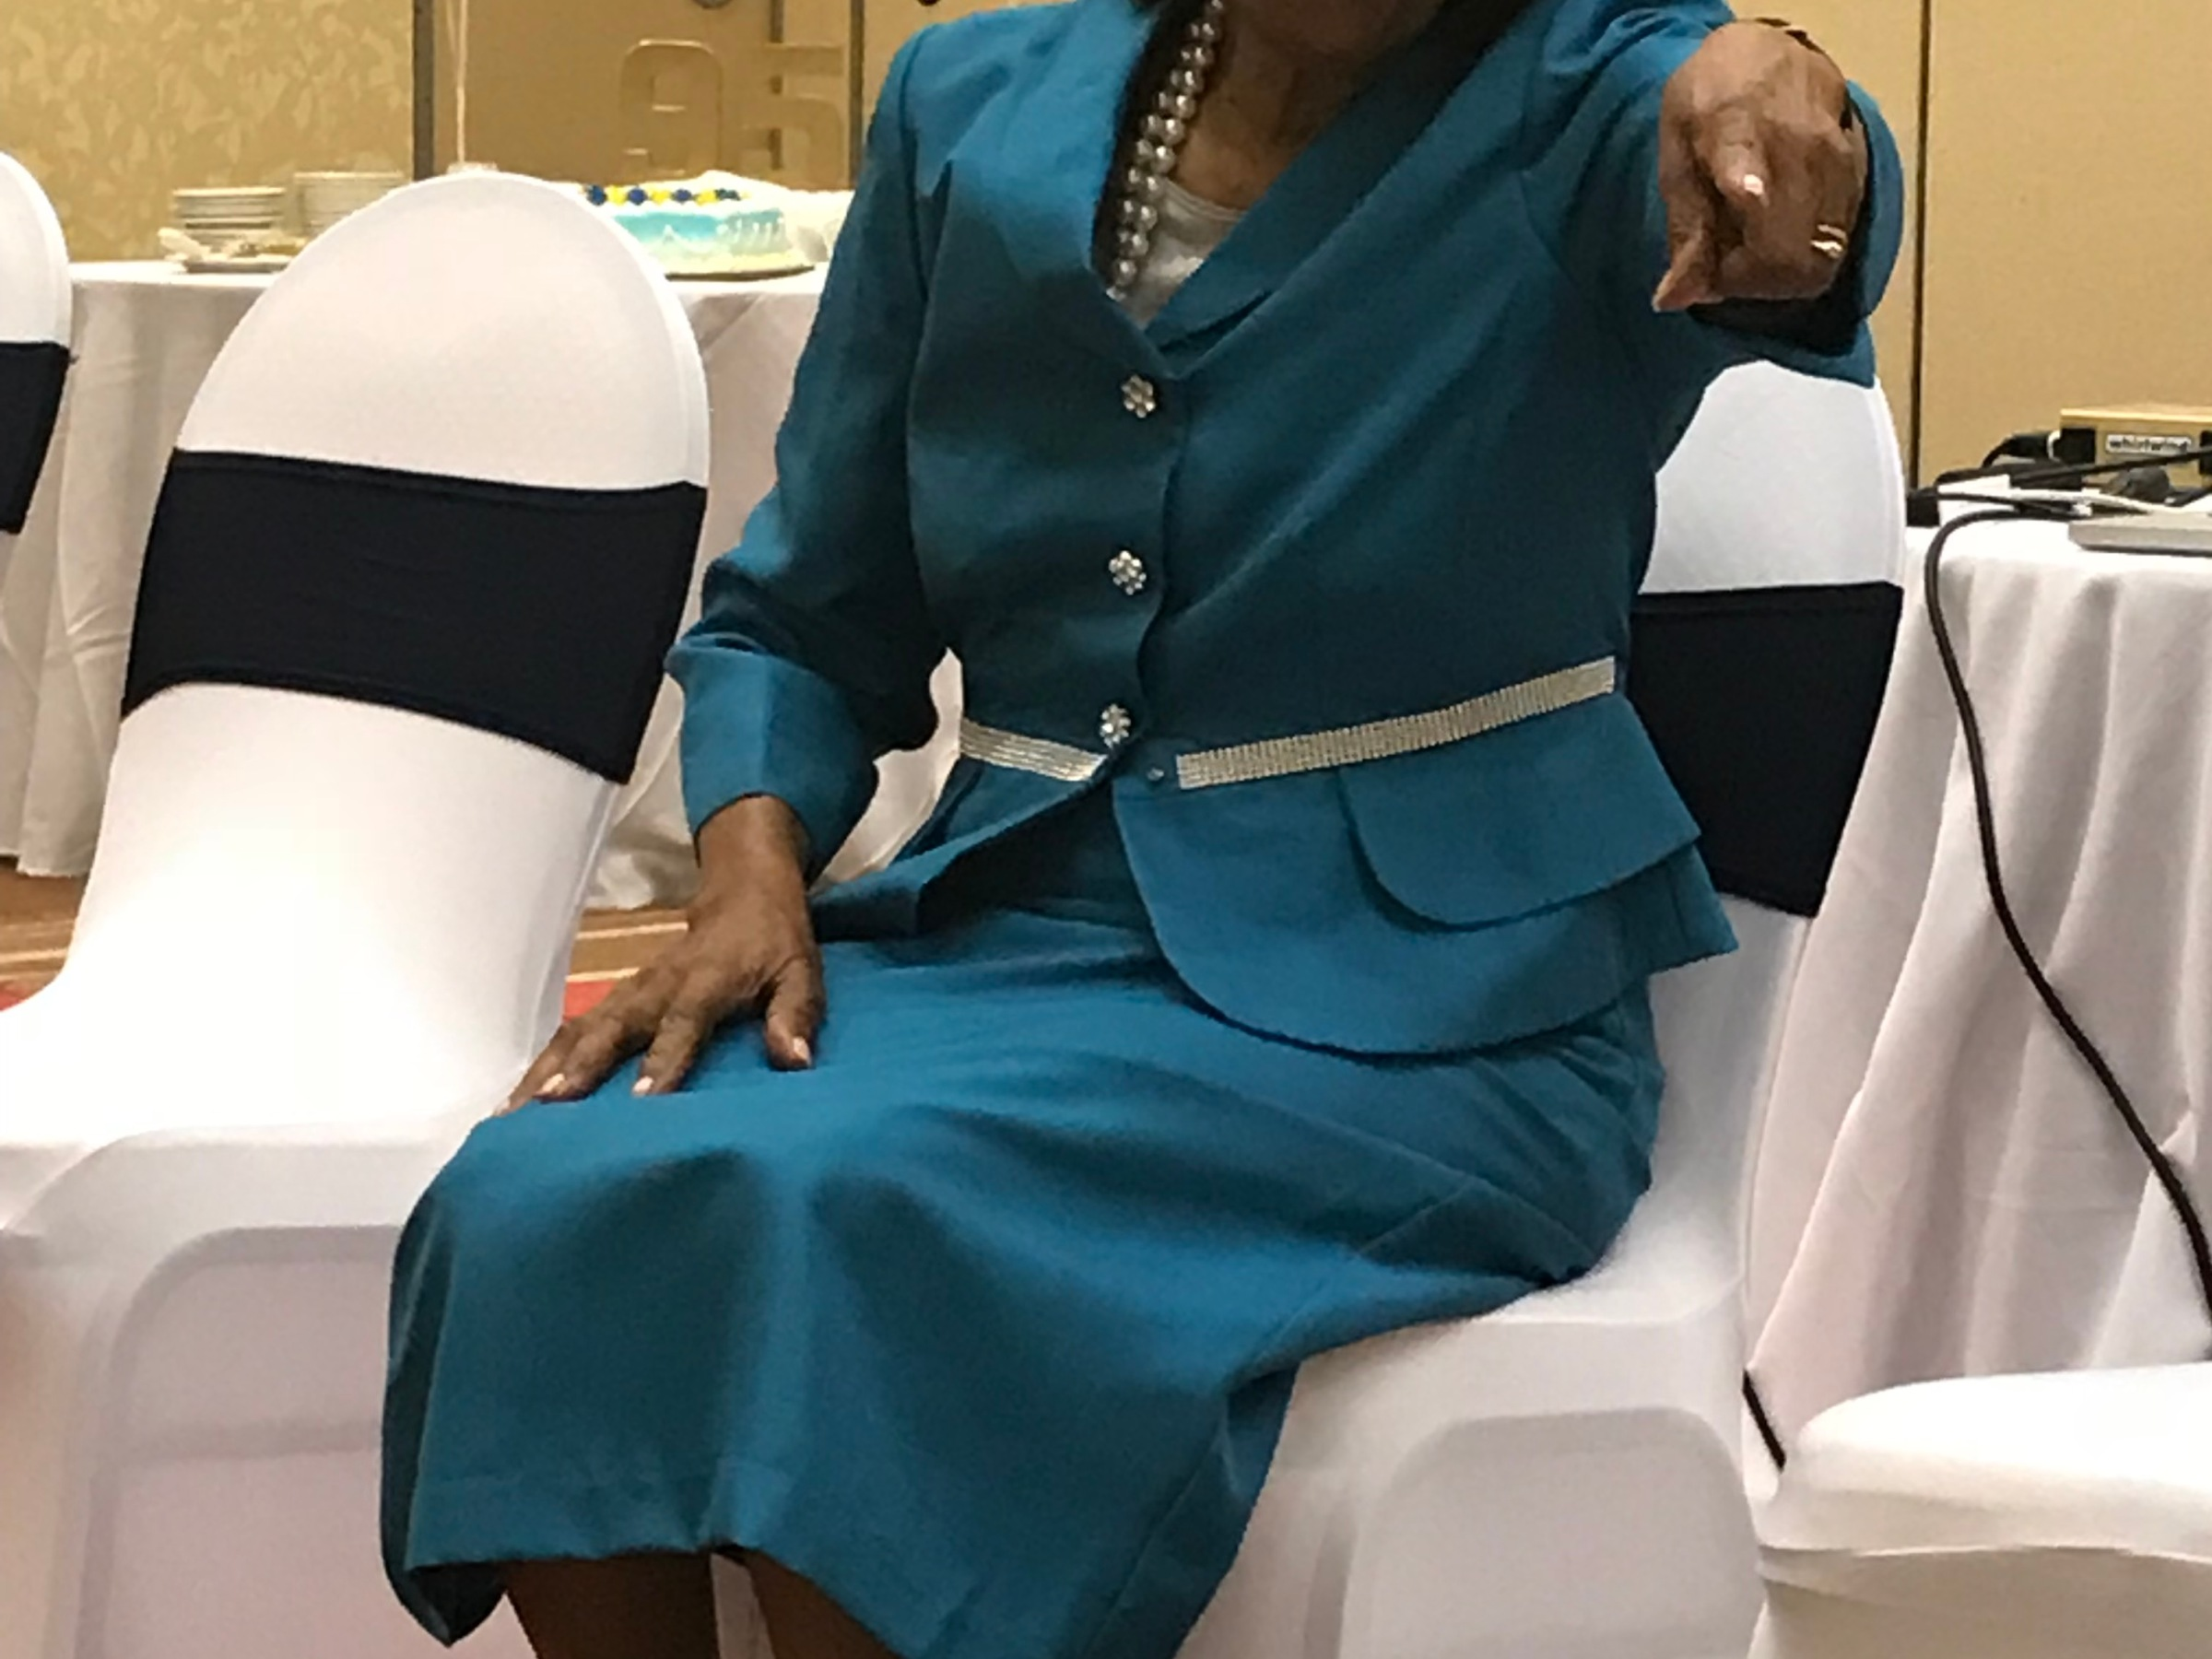 Margaret McCormick sitting in chair, in turquoise skirt suit. She's pointing at the camera and has a smirk on her face. It's her birthday.